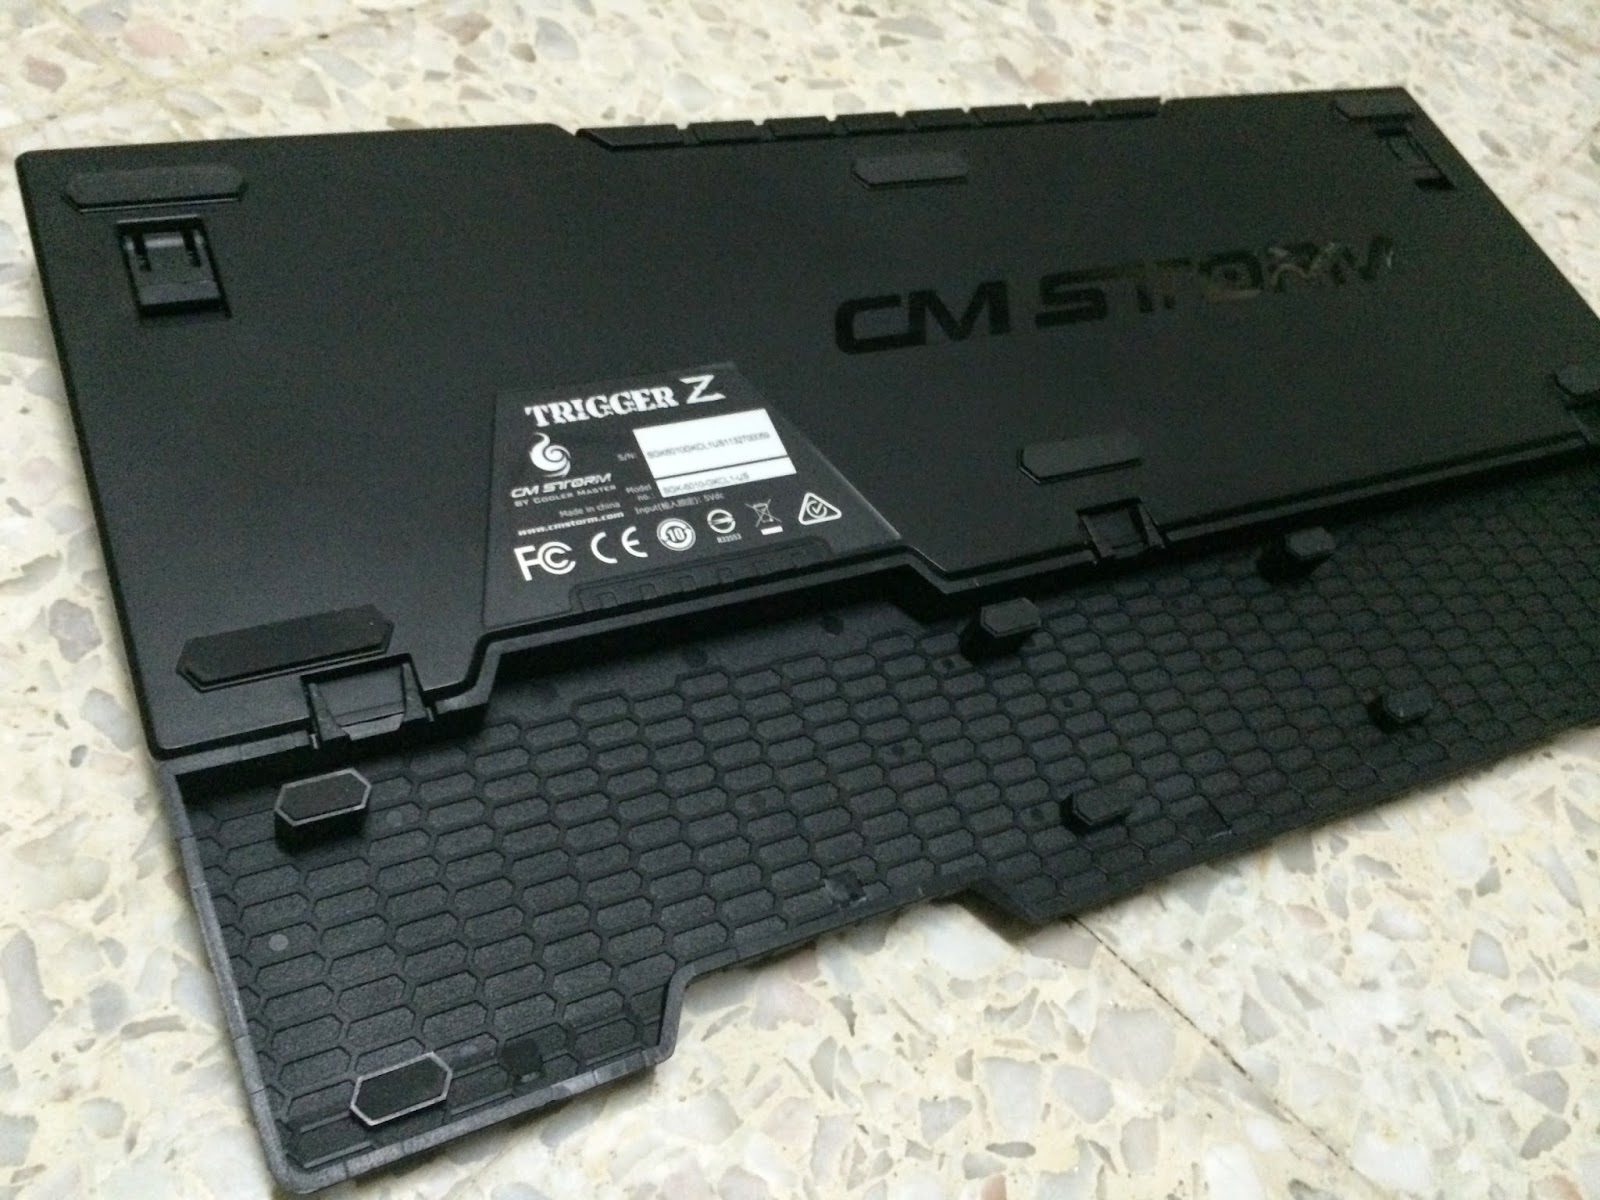 Quick Review: Cooler Master CM Storm Trigger Z 57